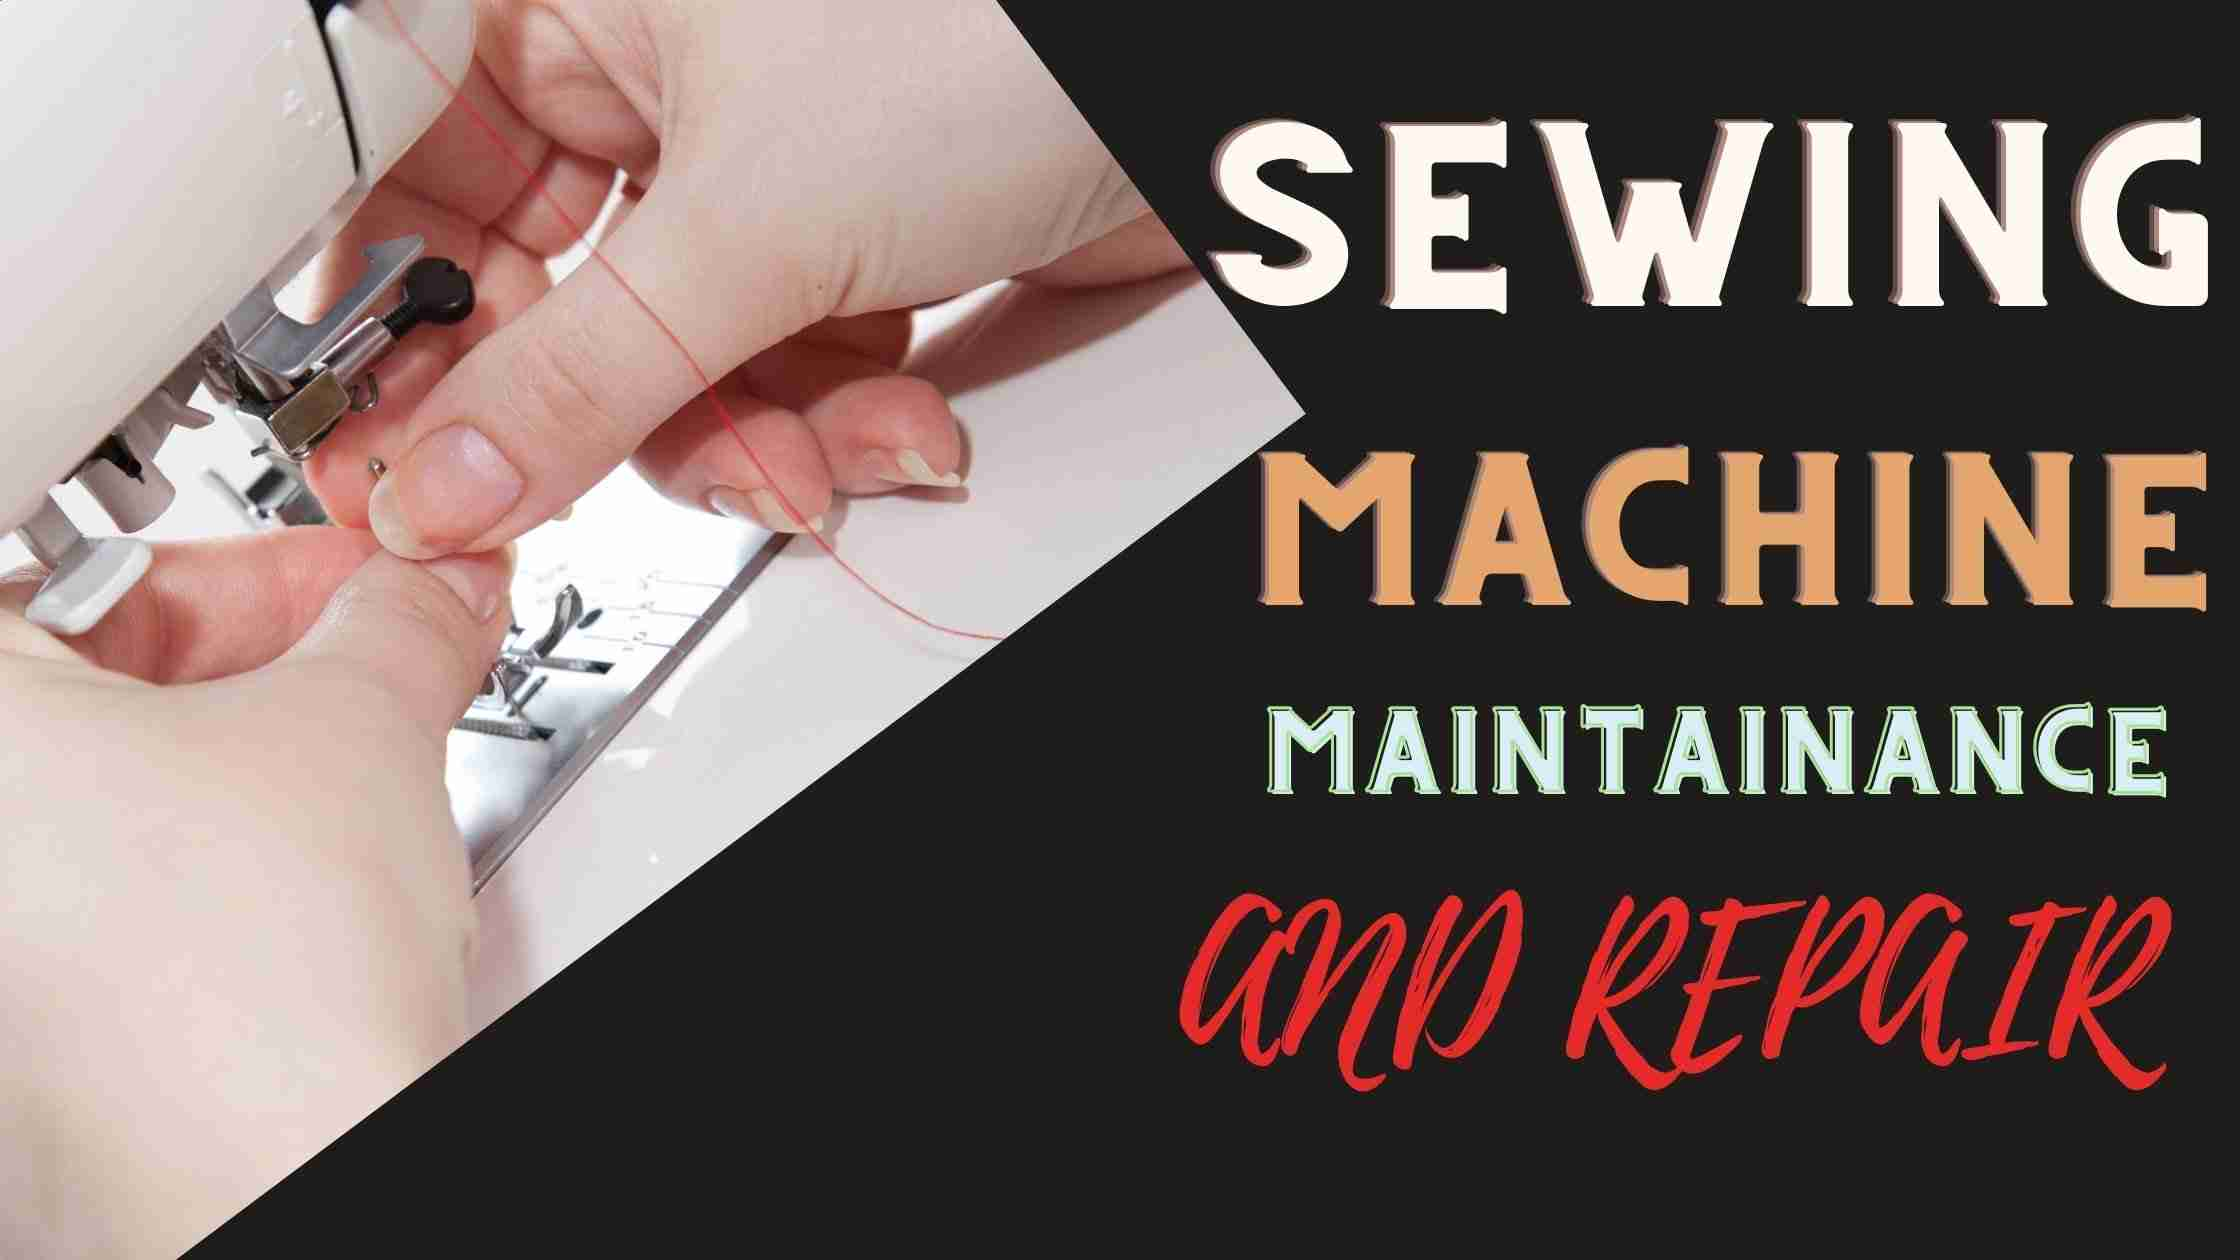 You are currently viewing SEWING MACHINE MAINTAINANCE AND REPAIR